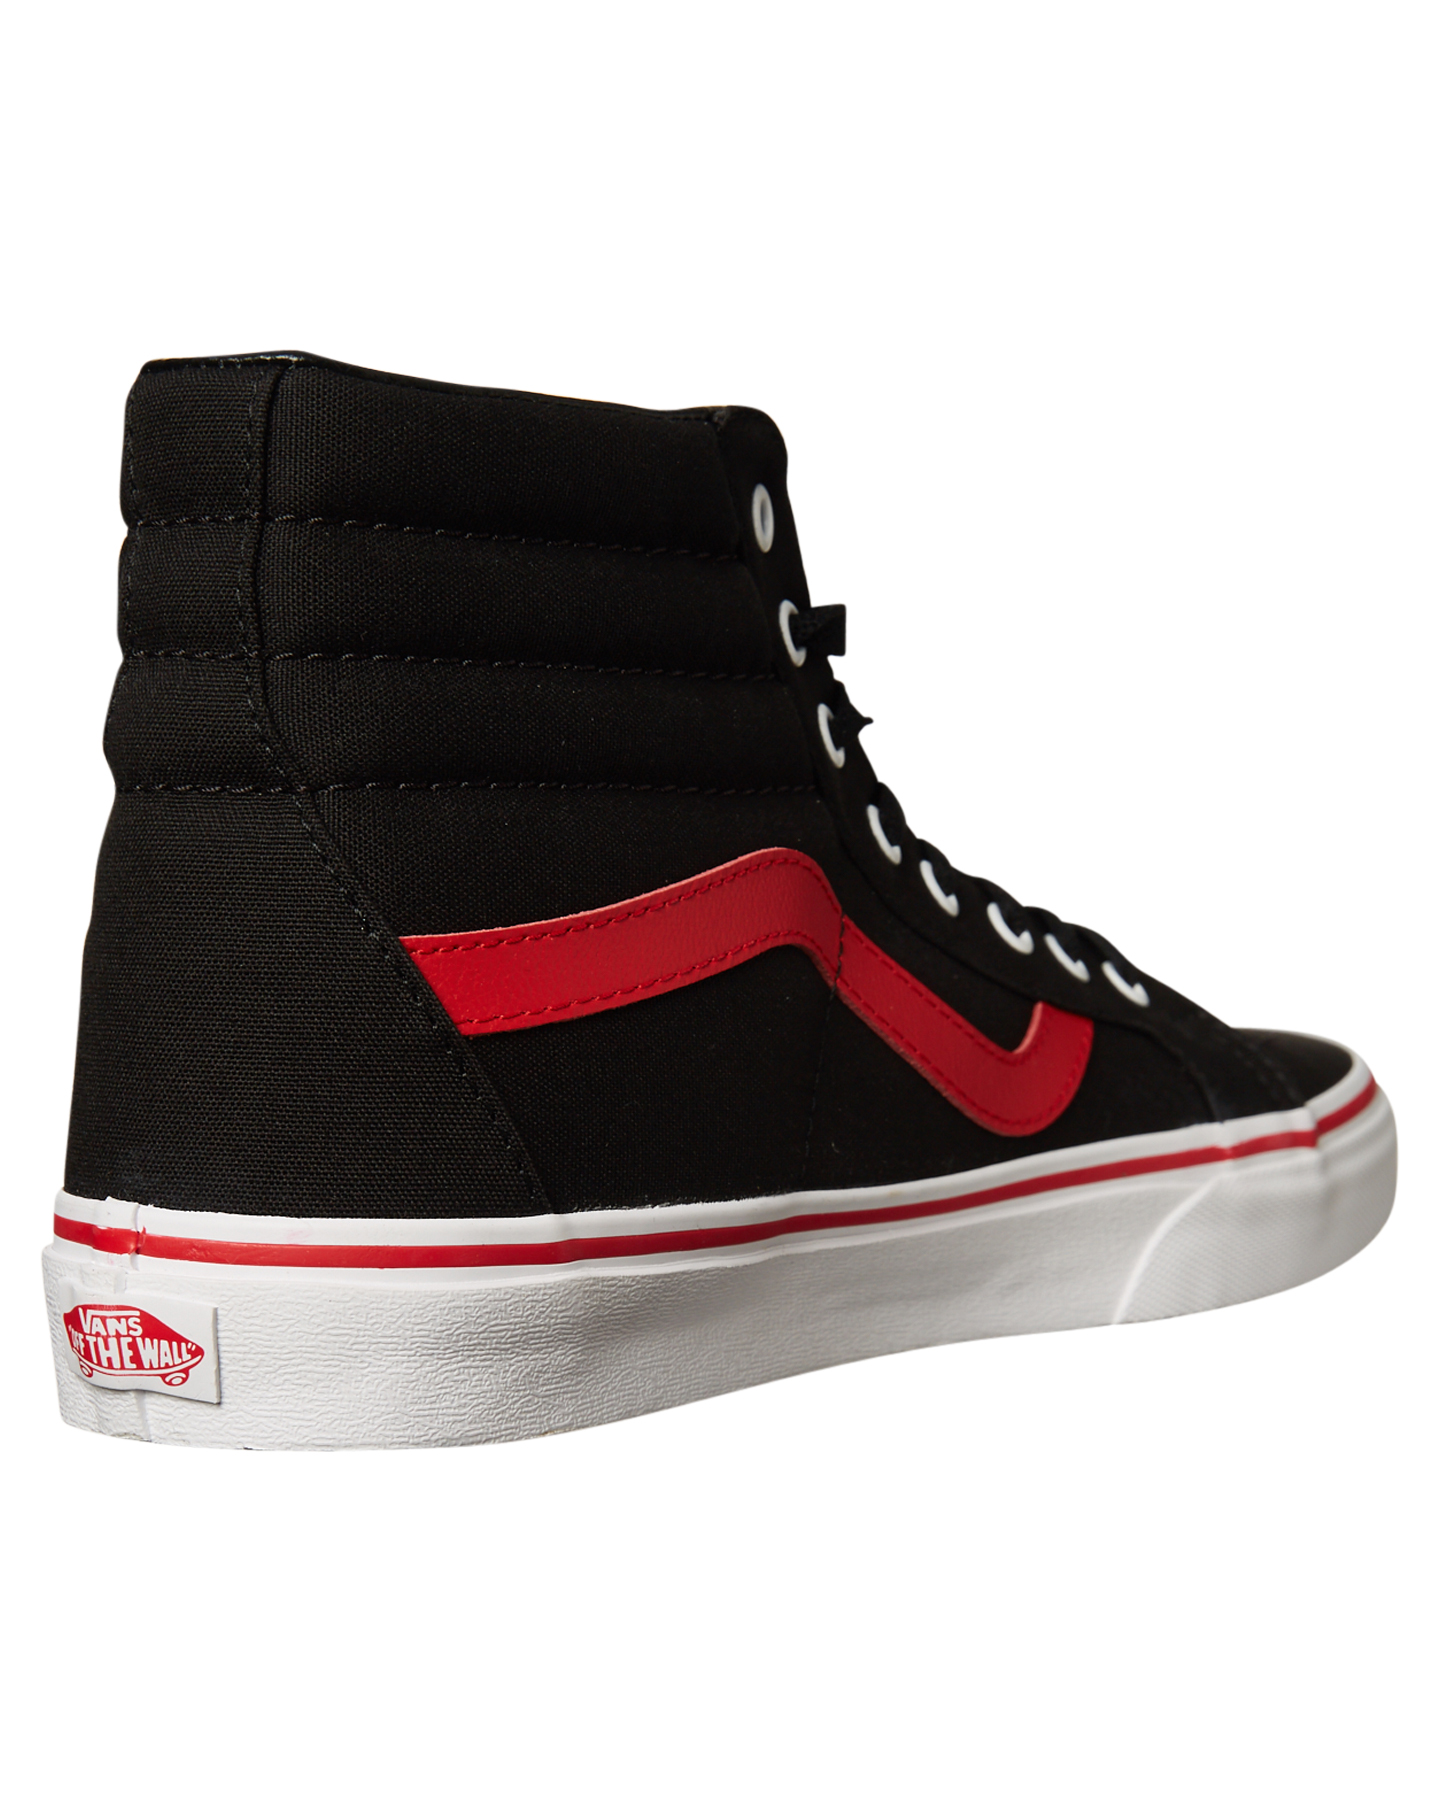 899dc6f0159 ... BLACK RACING RED MENS FOOTWEAR VANS SNEAKERS - VNA2XSBORCBLK ...